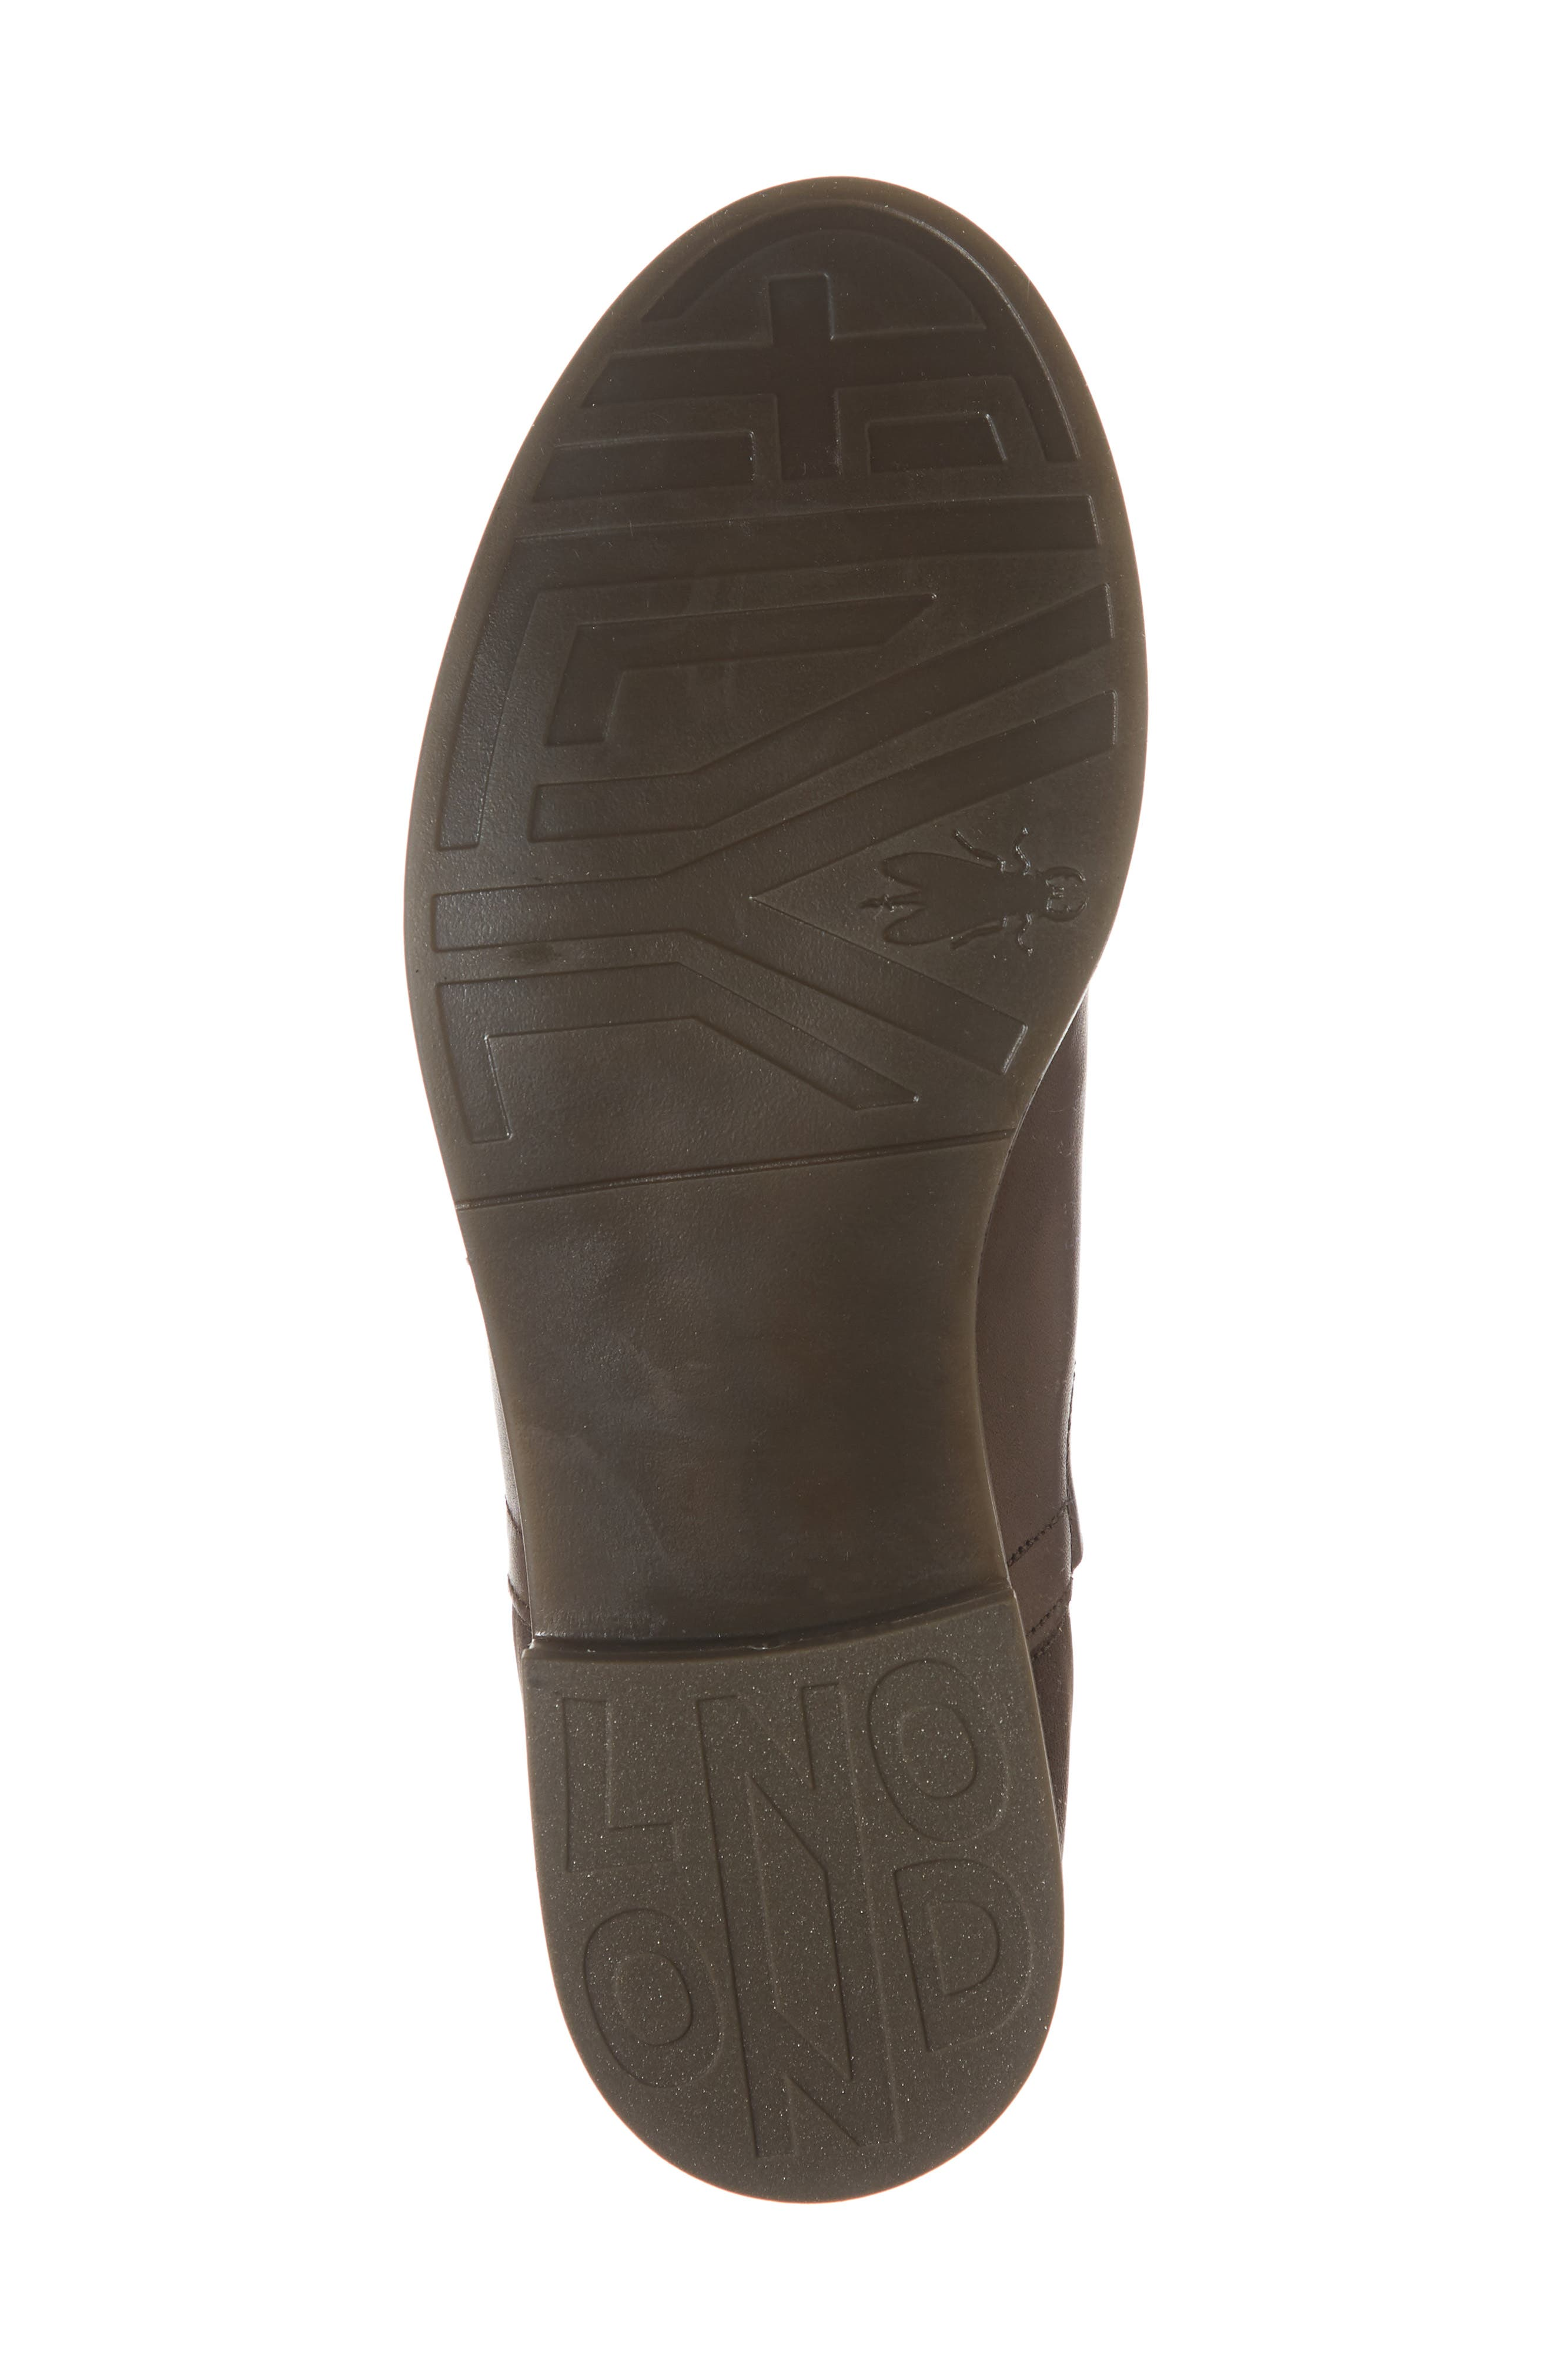 Alls Chelsea Bootie,                             Alternate thumbnail 6, color,                             DARK BROWN LEATHER